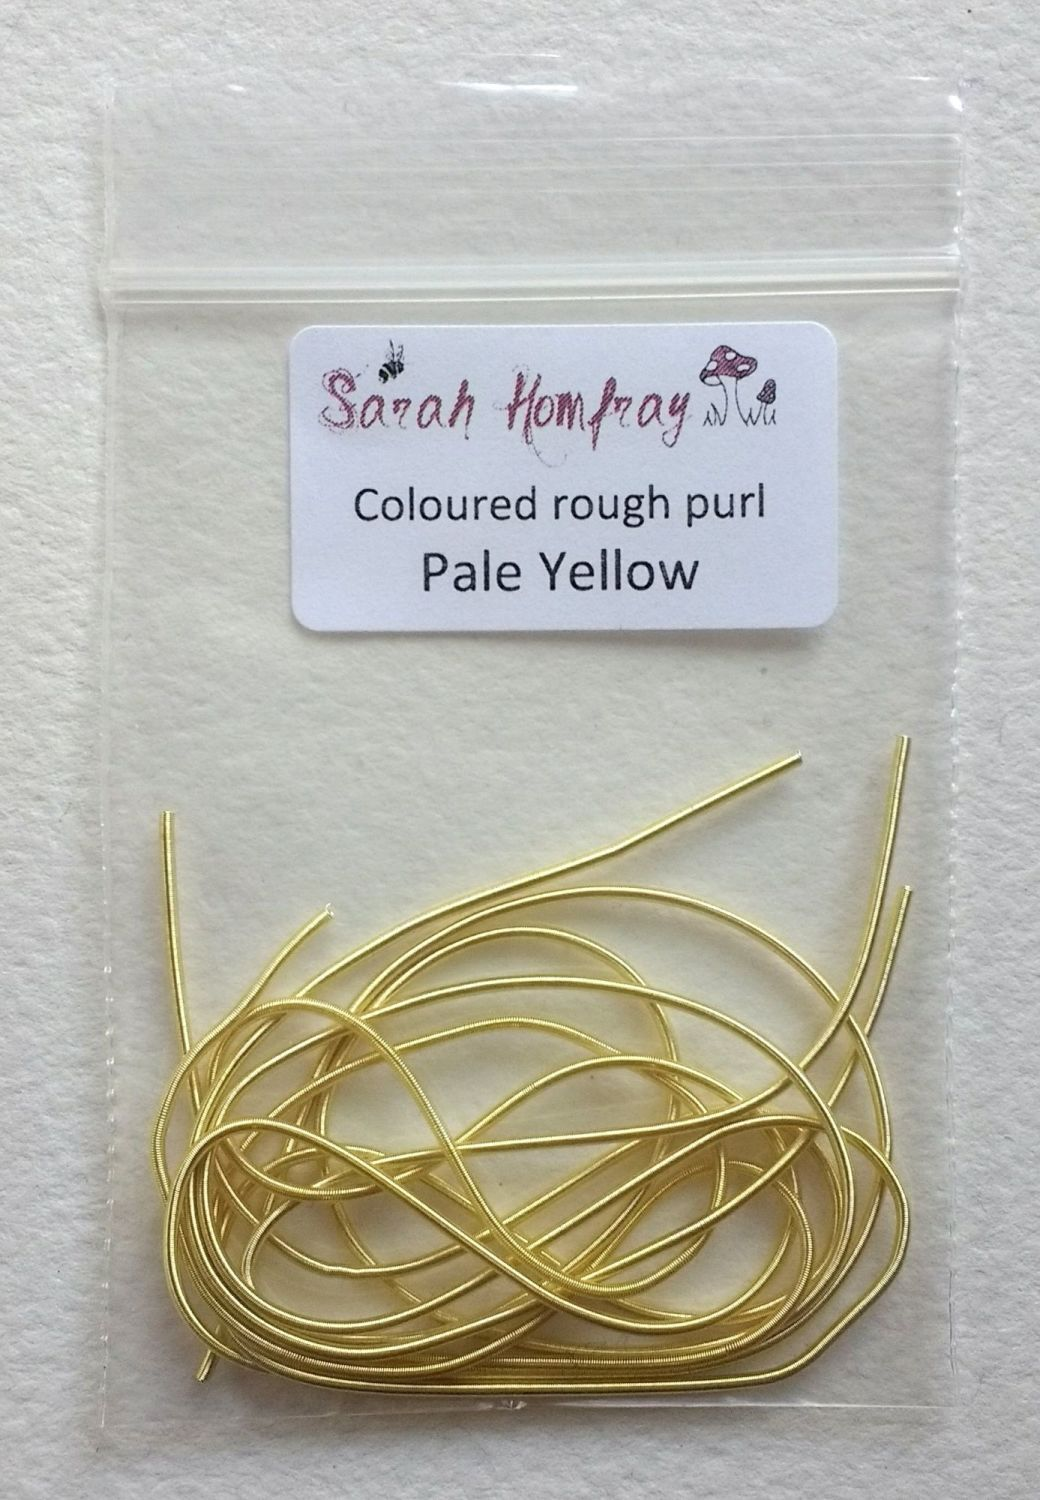 NEW! Coloured Rough purl no.6 - Pale Yellow